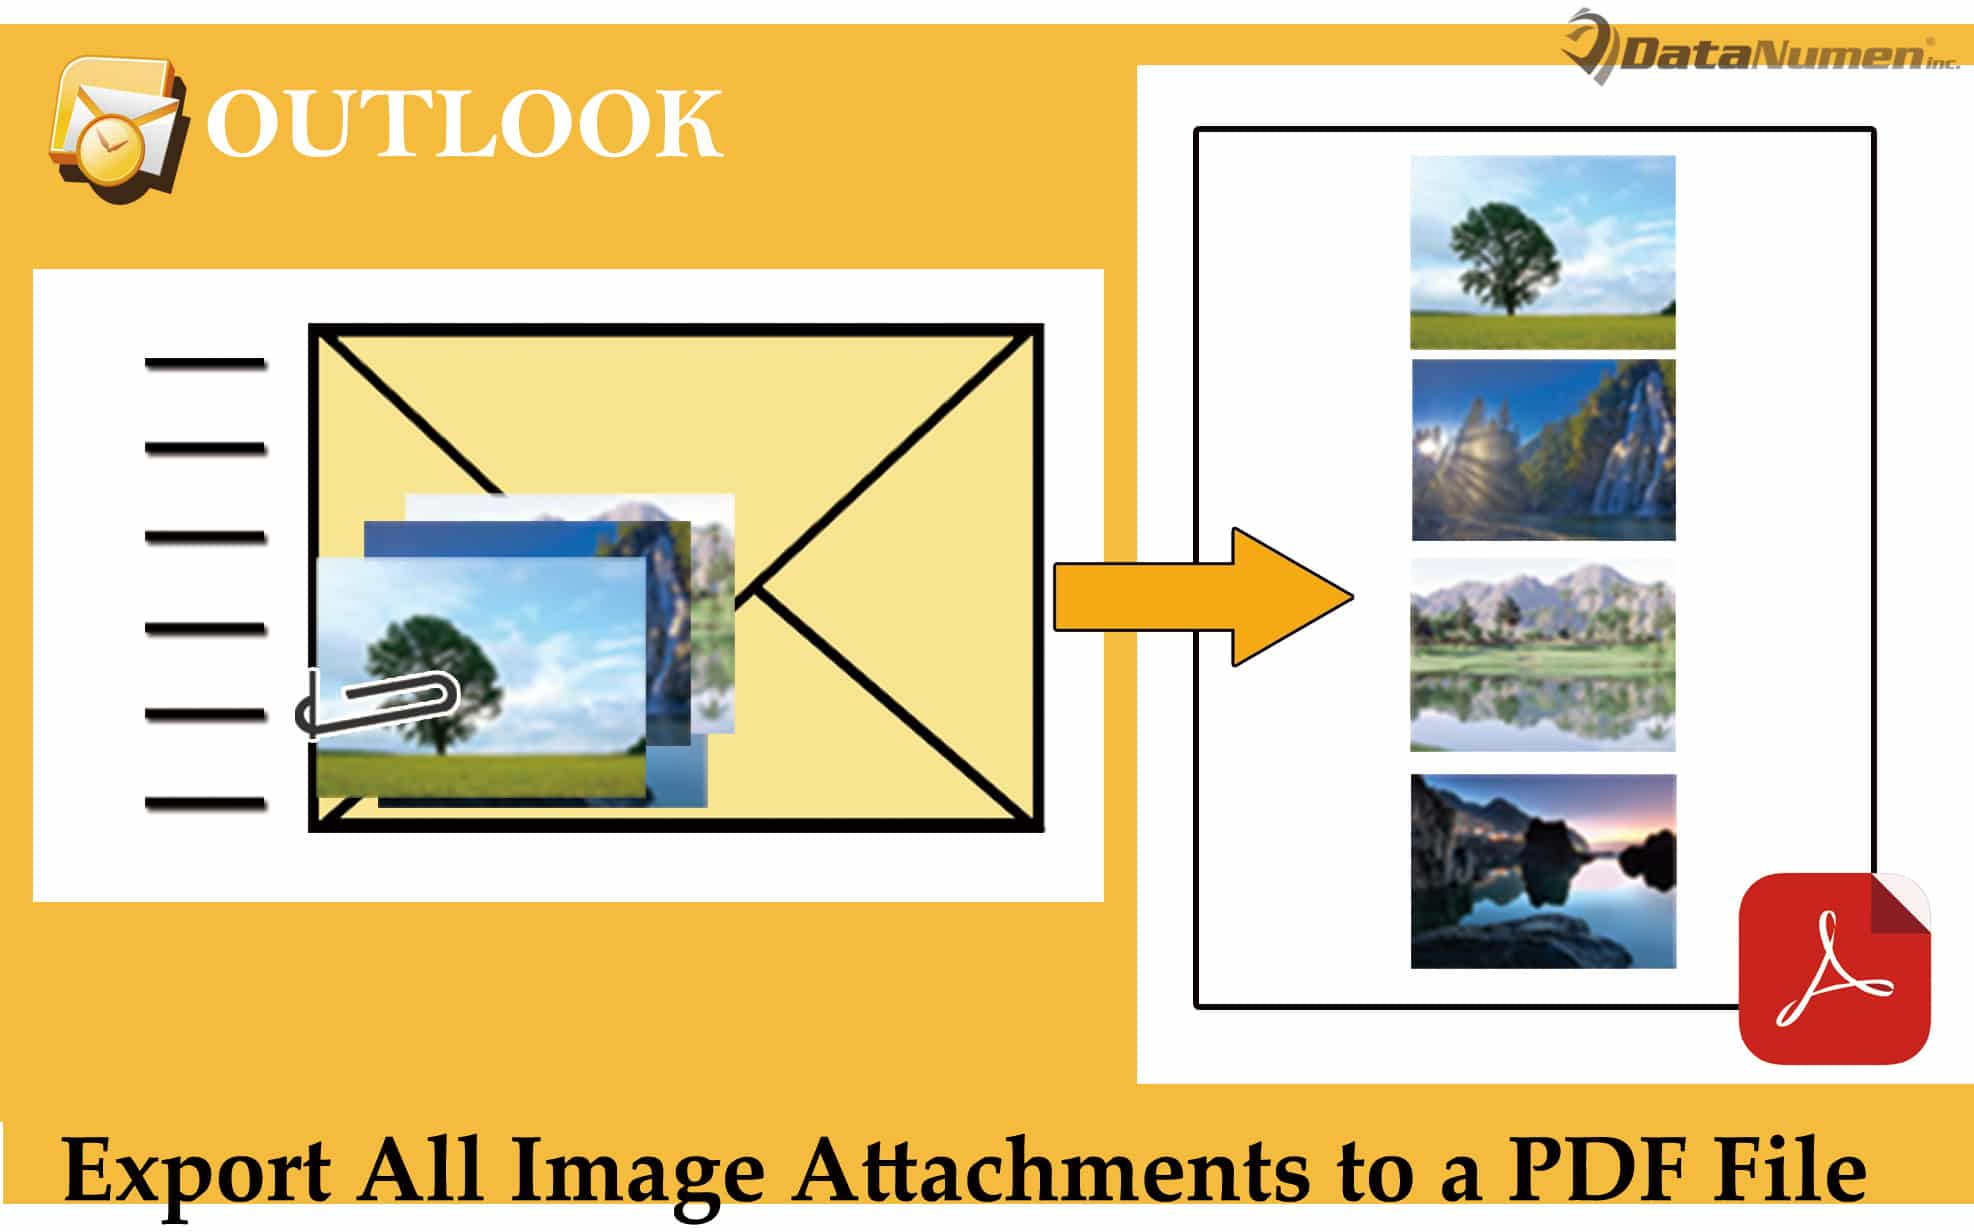 Quickly Export All Image Attachments of an Outlook Email to a PDF File